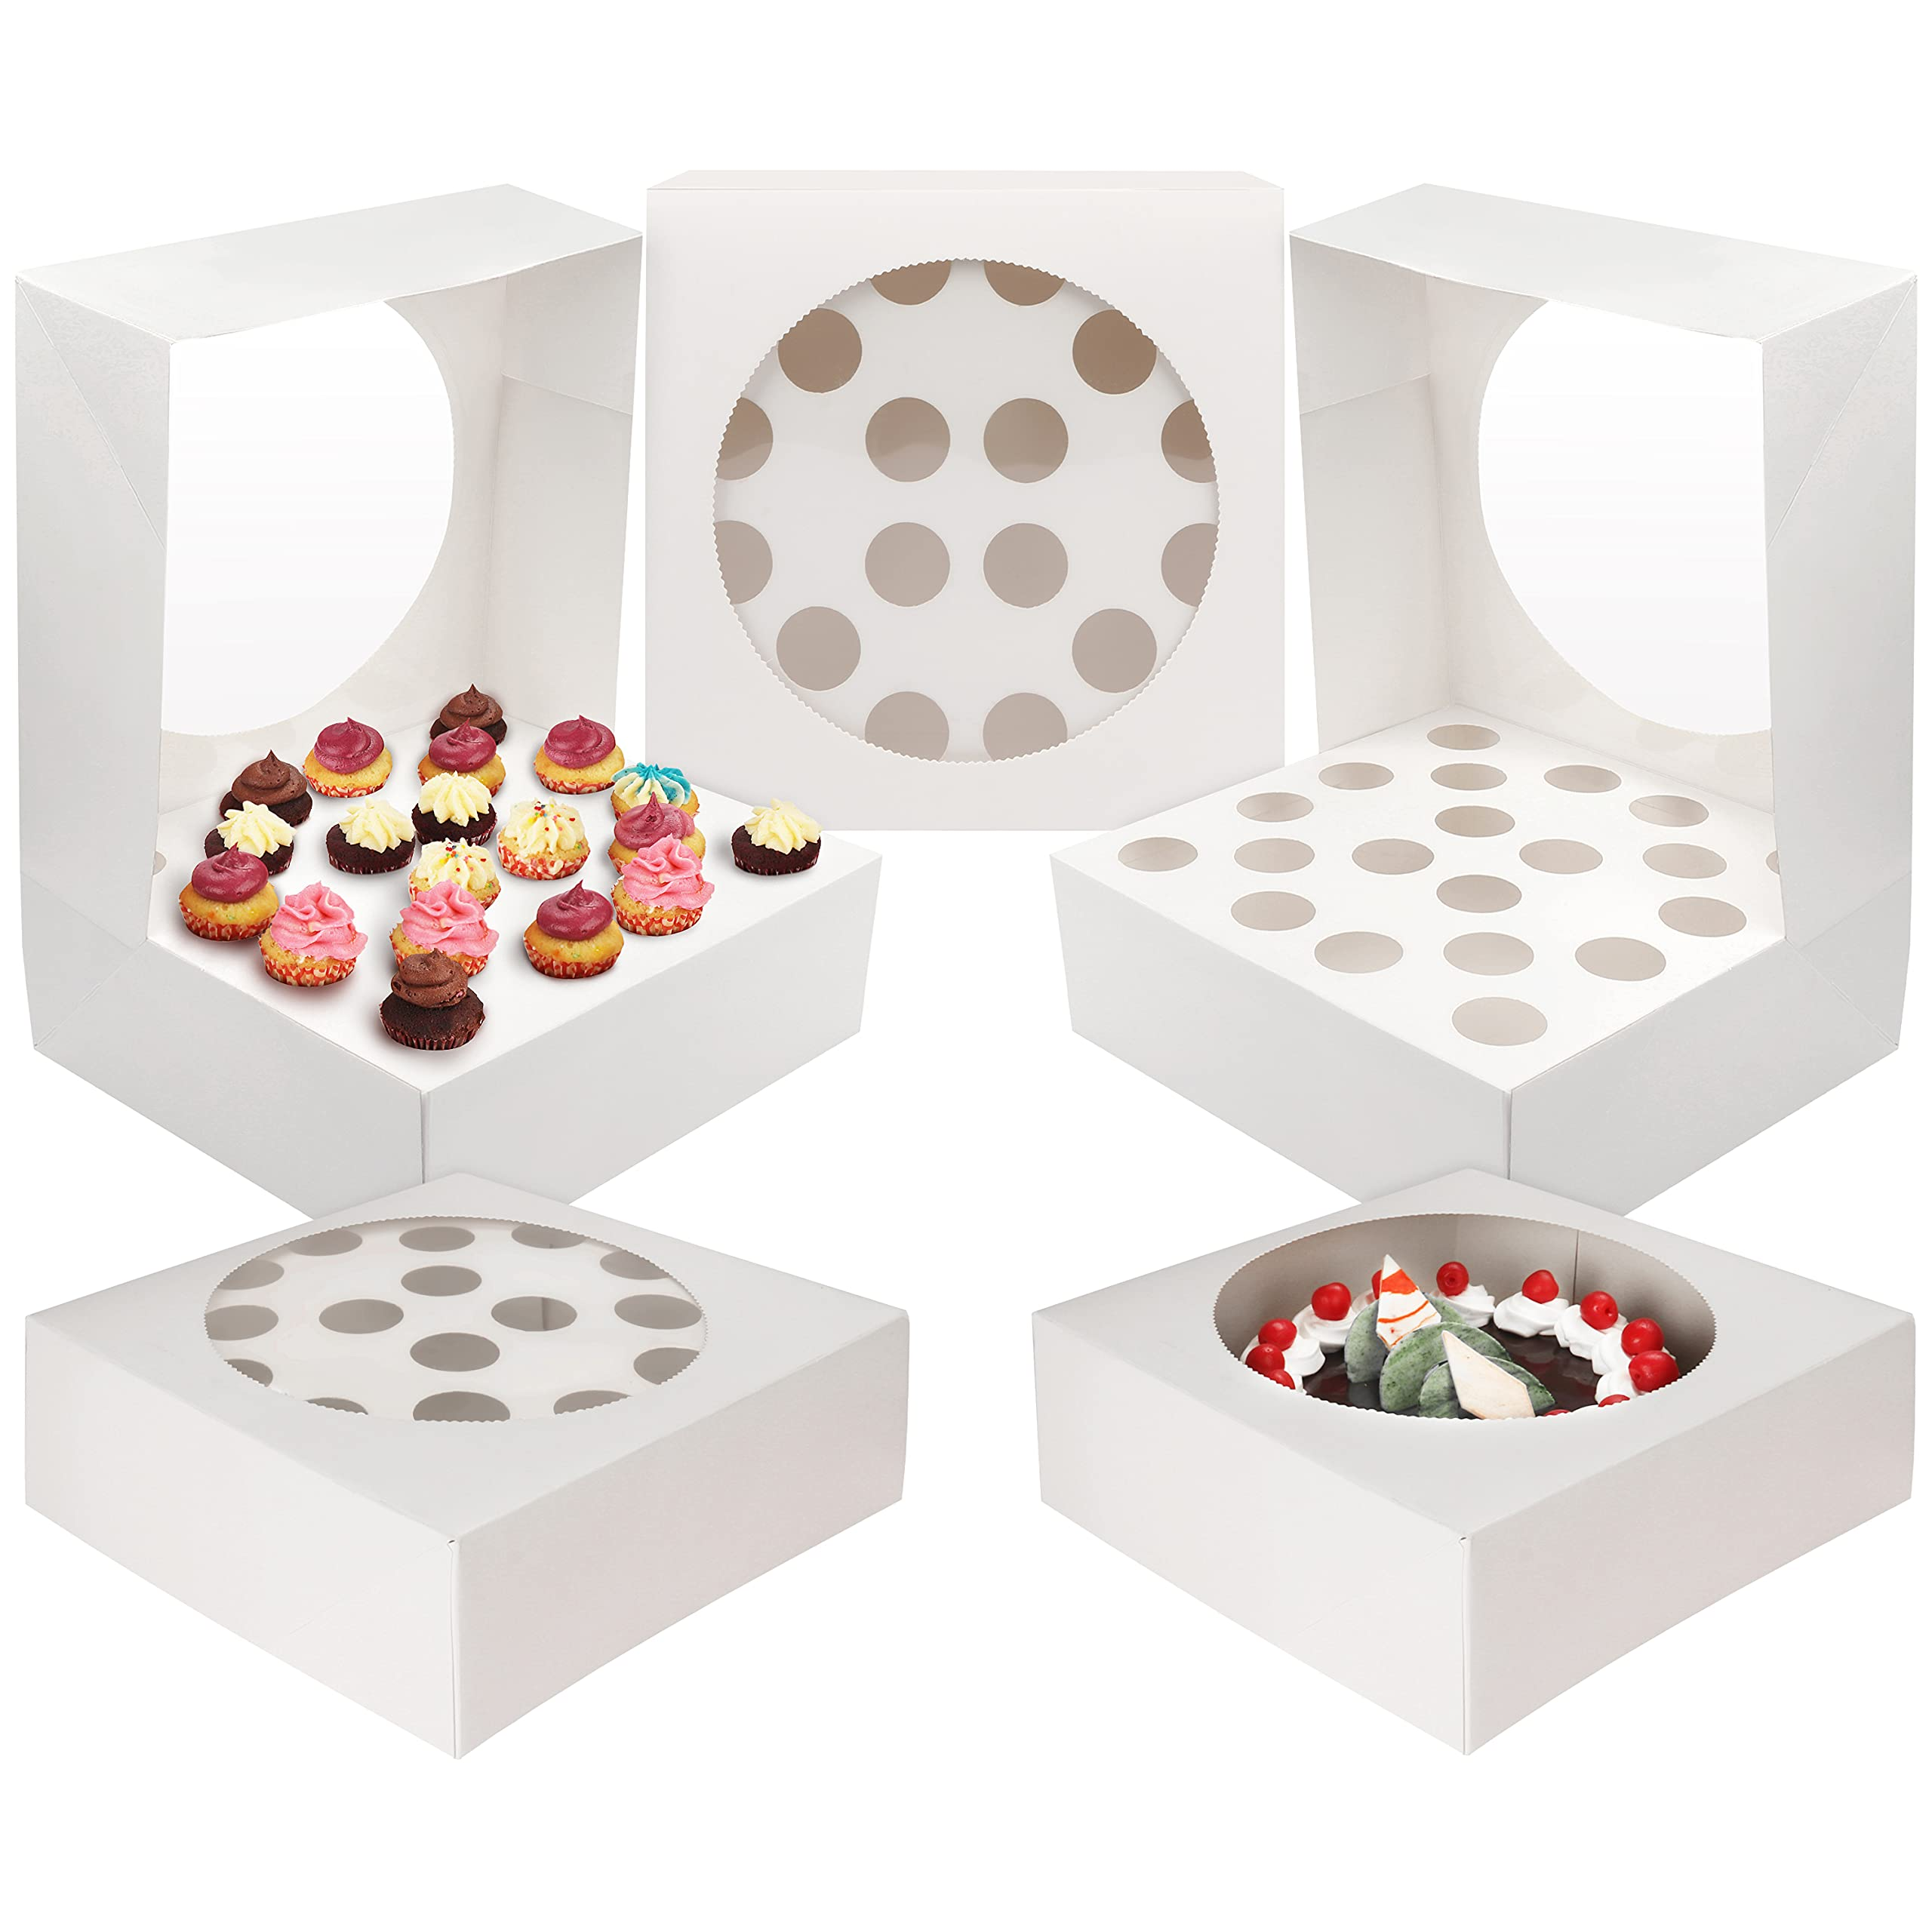 20 x Individual White Cupcake Boxes Presentation Fairy Cup Cake Insert NO Window